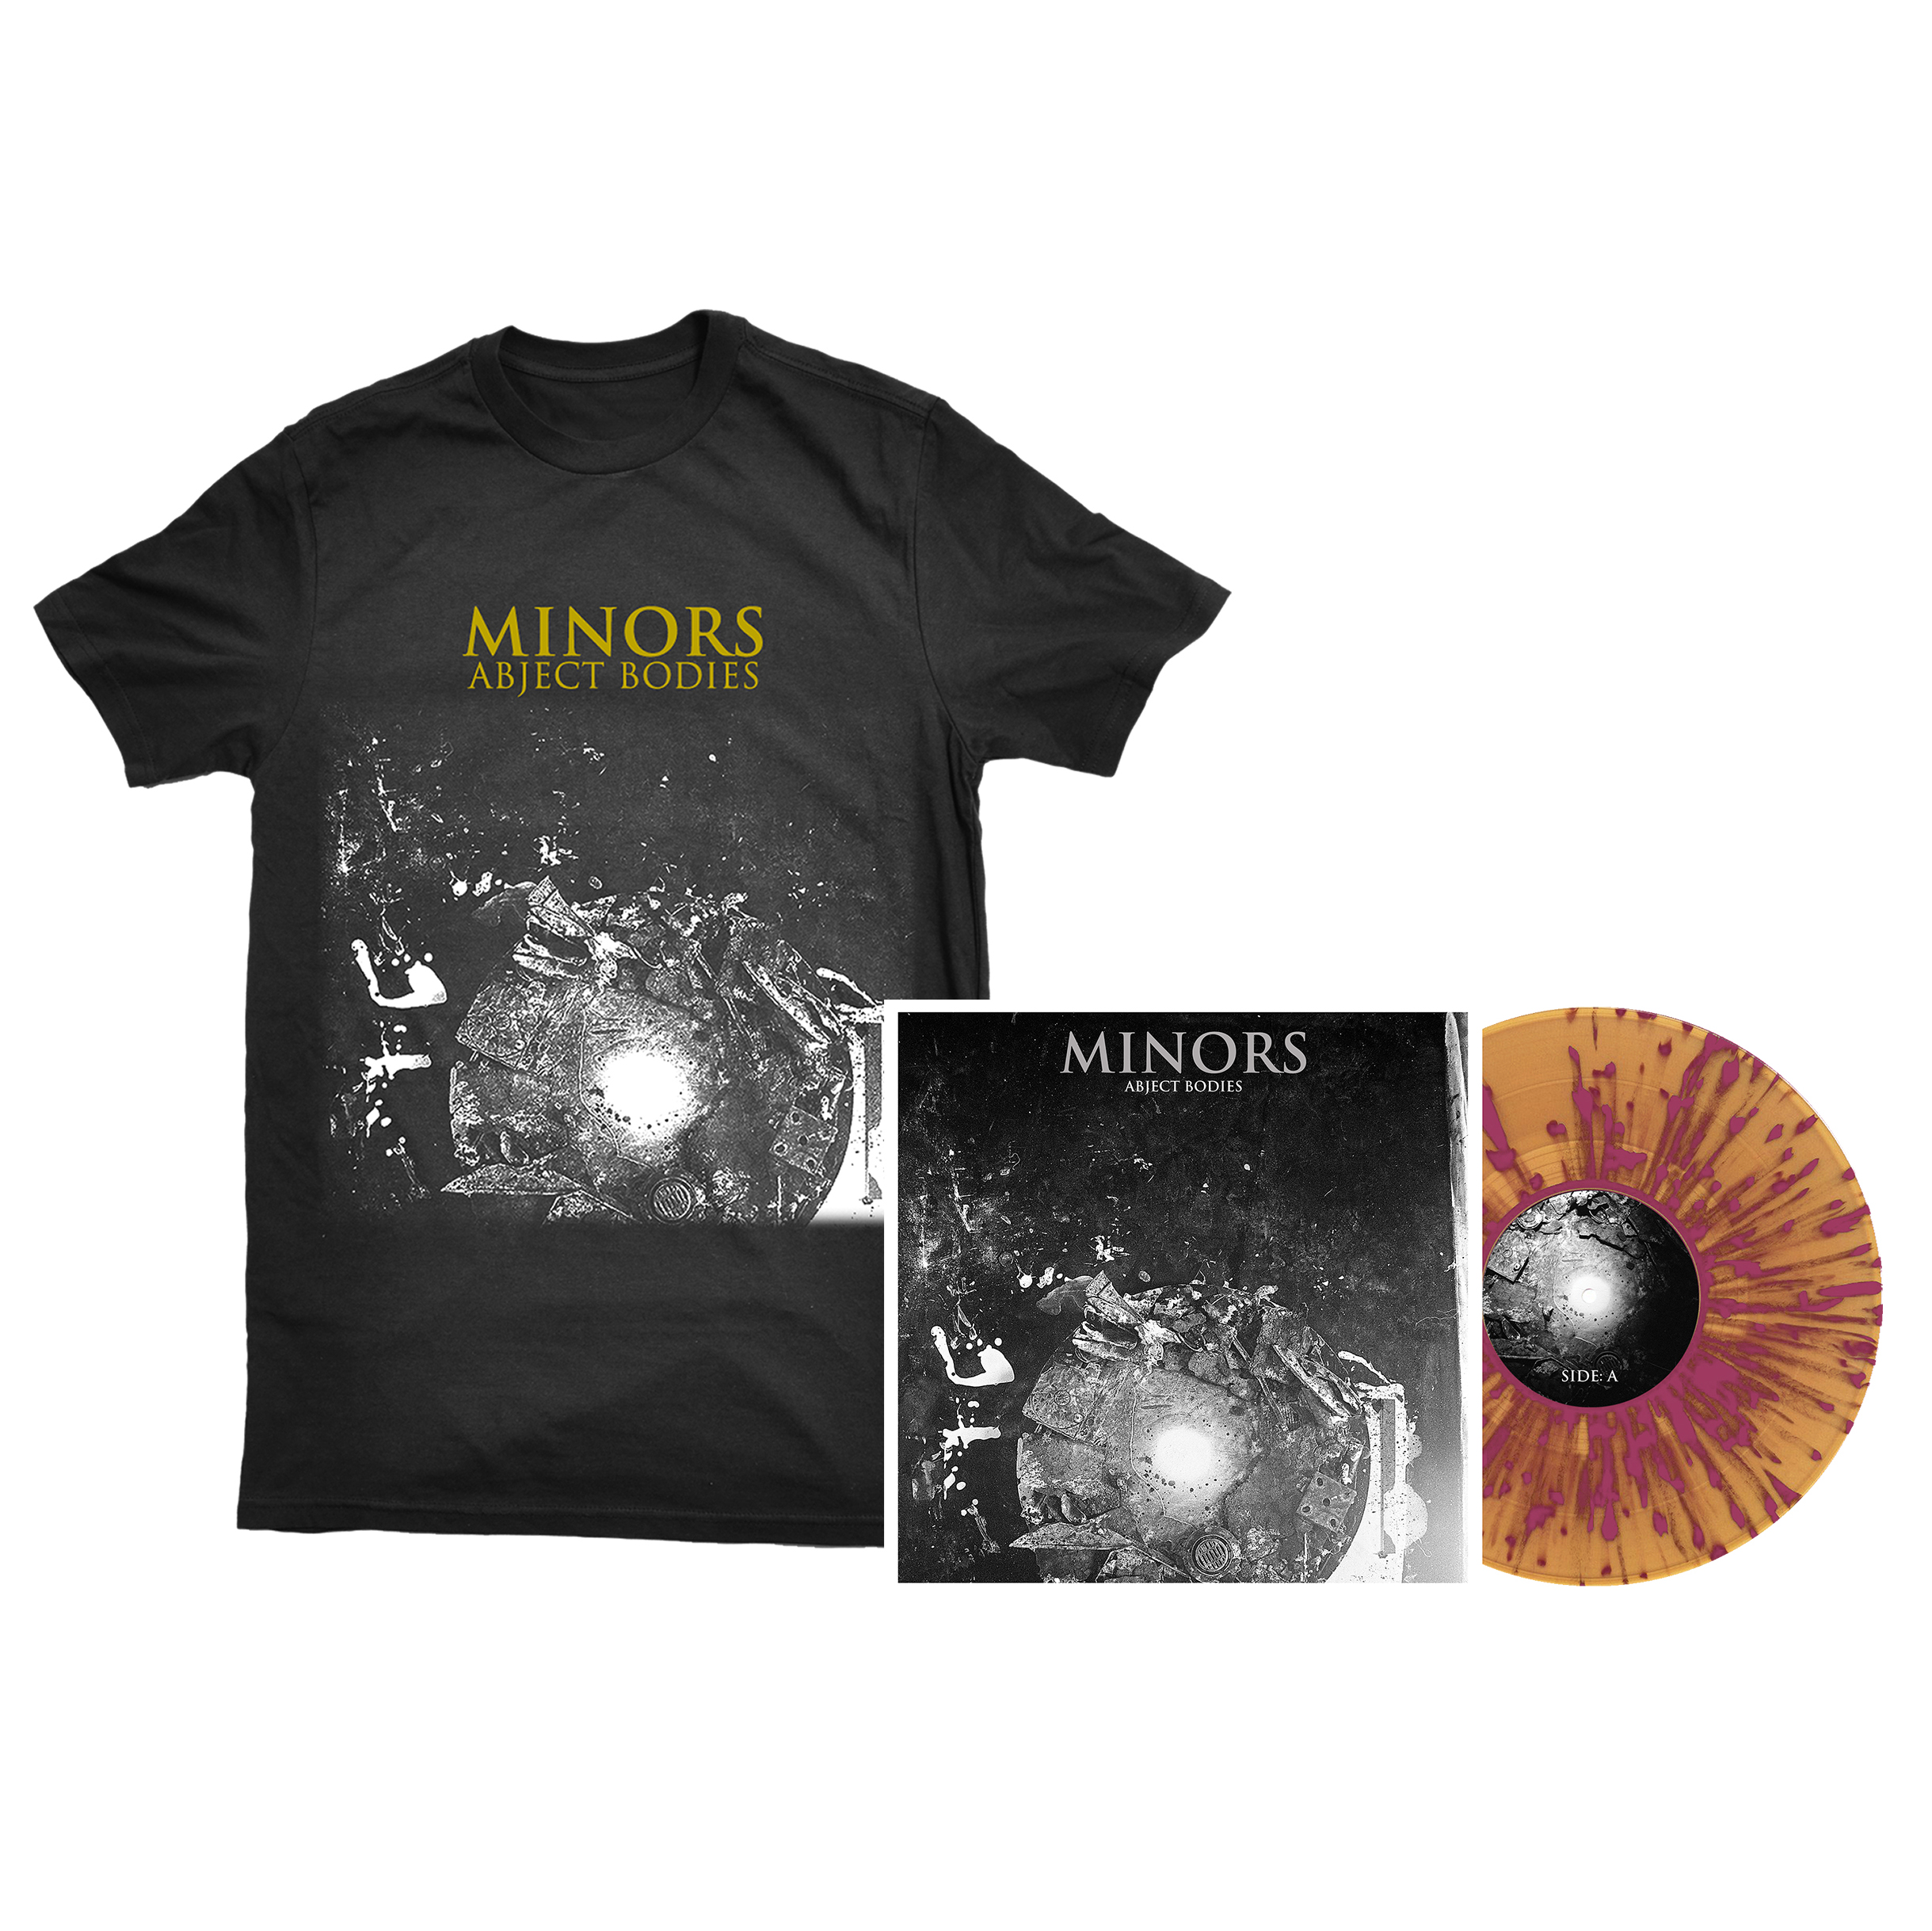 Minors - Abject Bodies shirt + LP